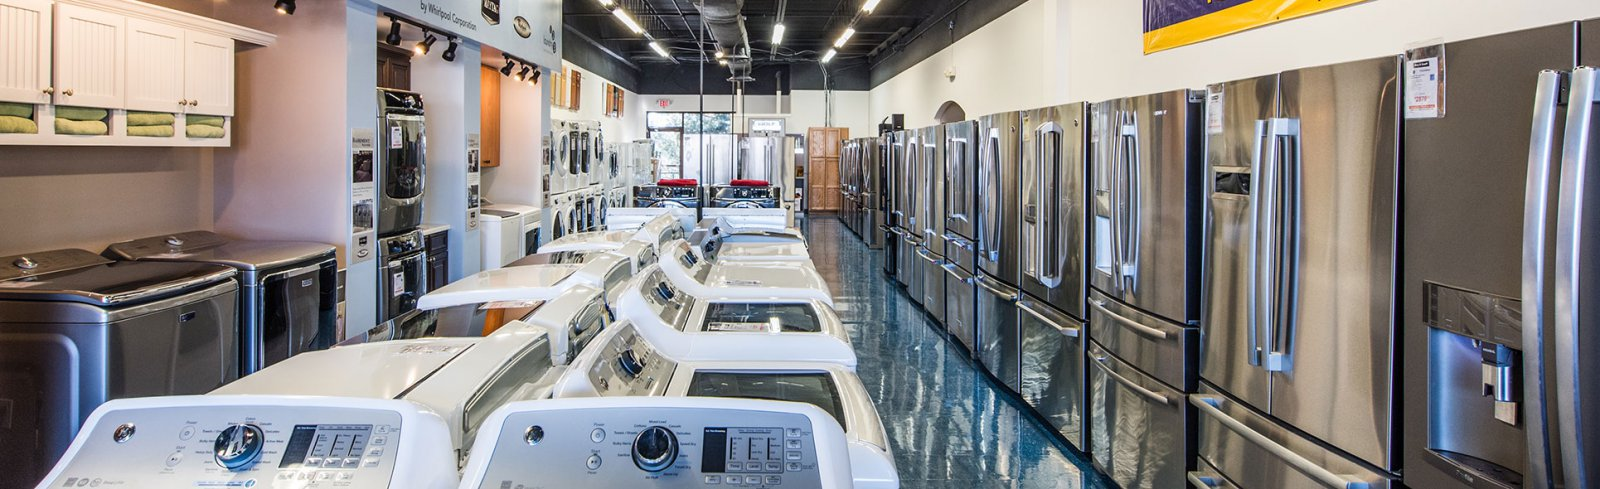 Kitchen Appliance Stores Fairfax Va